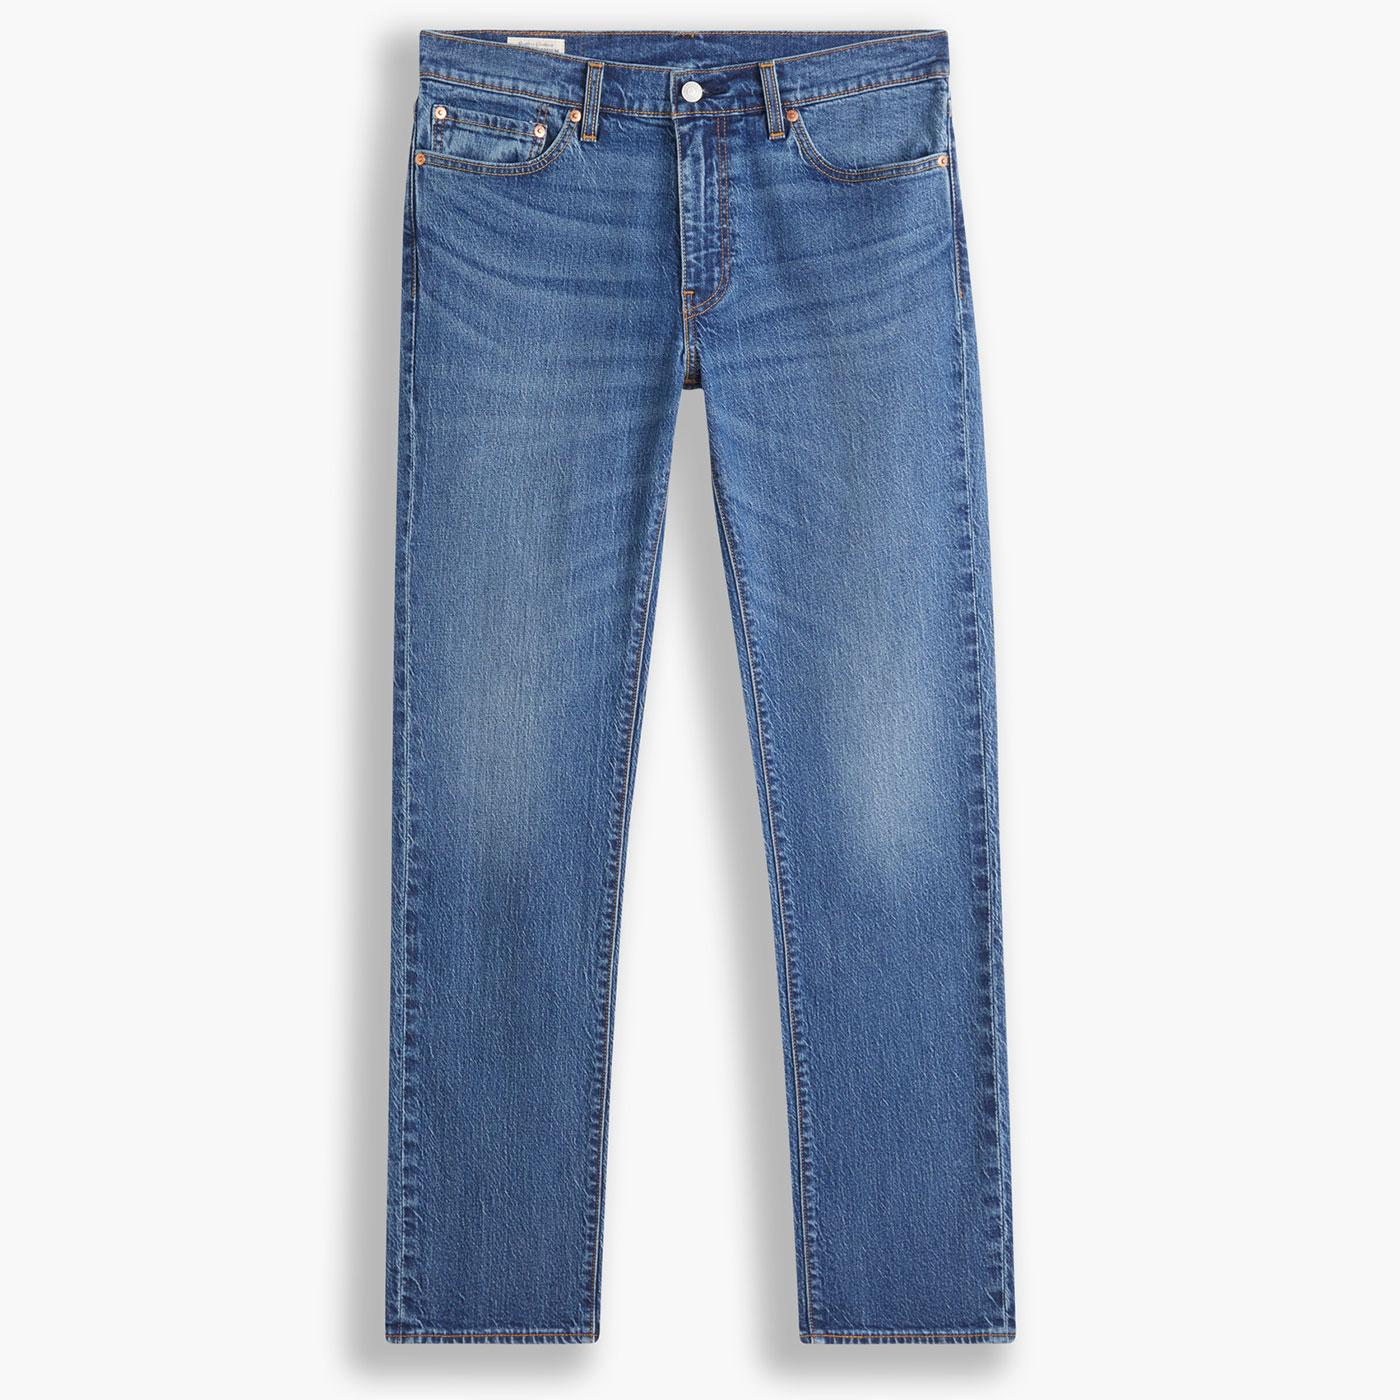 LEVI'S 511 Slim Retro Jeans (Every Little Thing)